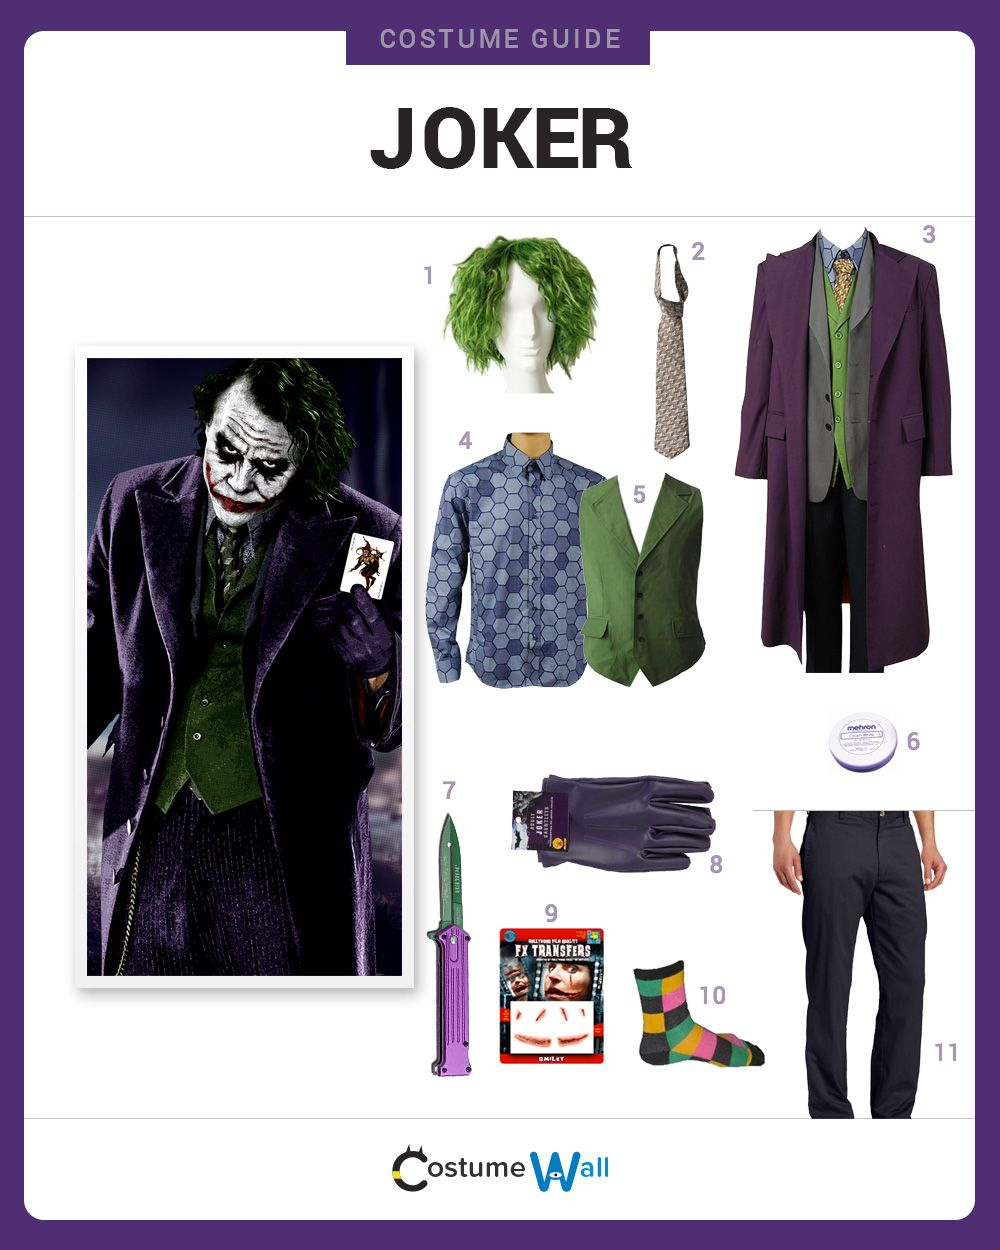 Dress like the Joker from the Batman movies. Get cosplay inspiration and a  DIY costume guide for Batman s nemesis fc5a751c5